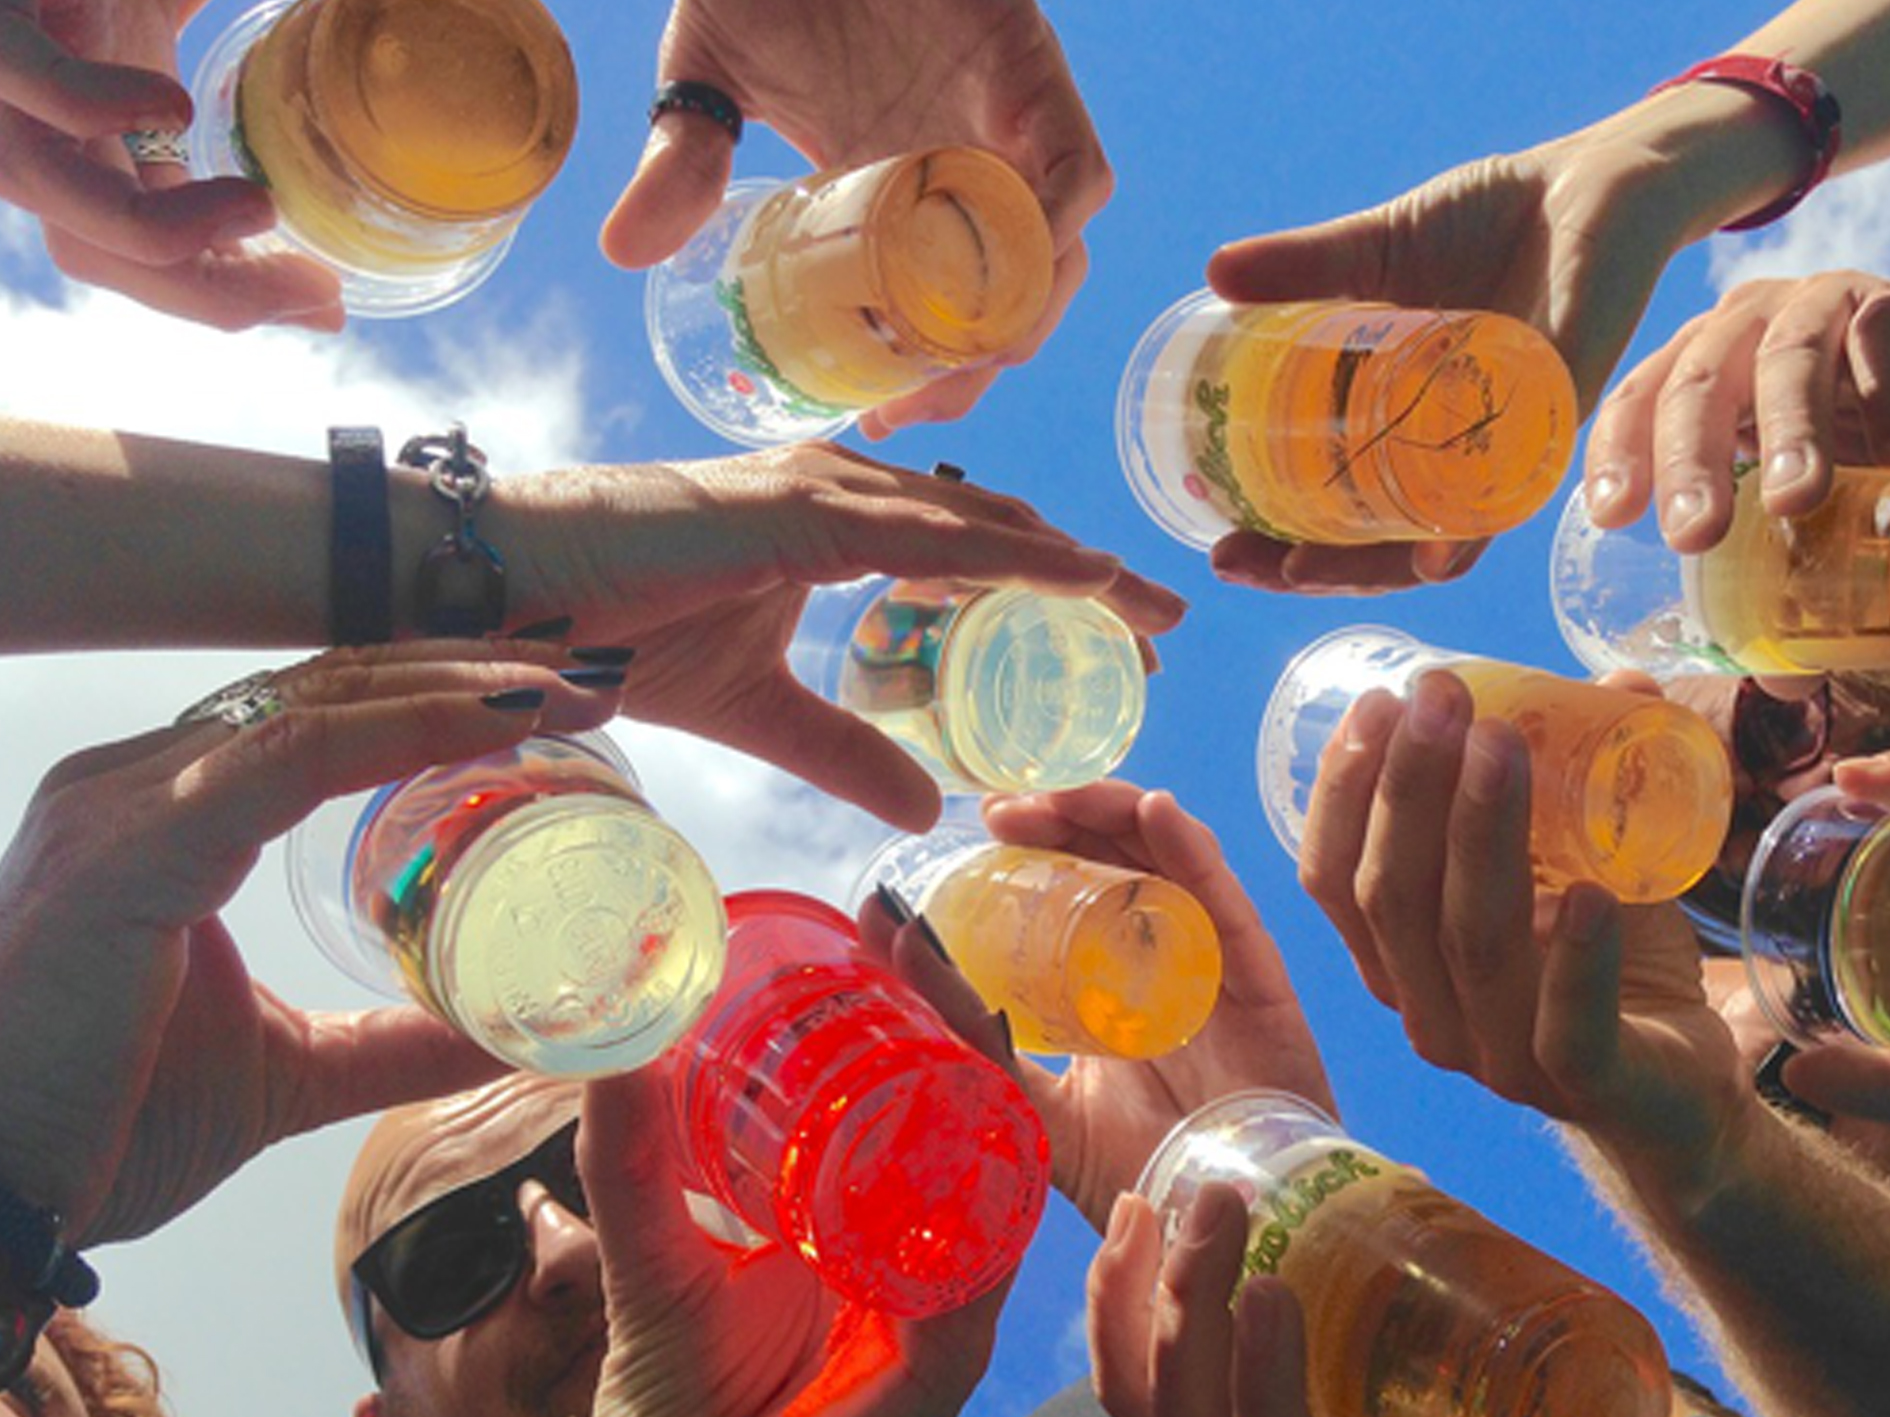 a ground up view of people bringing plastic glasses together for a cheers in the sunshine